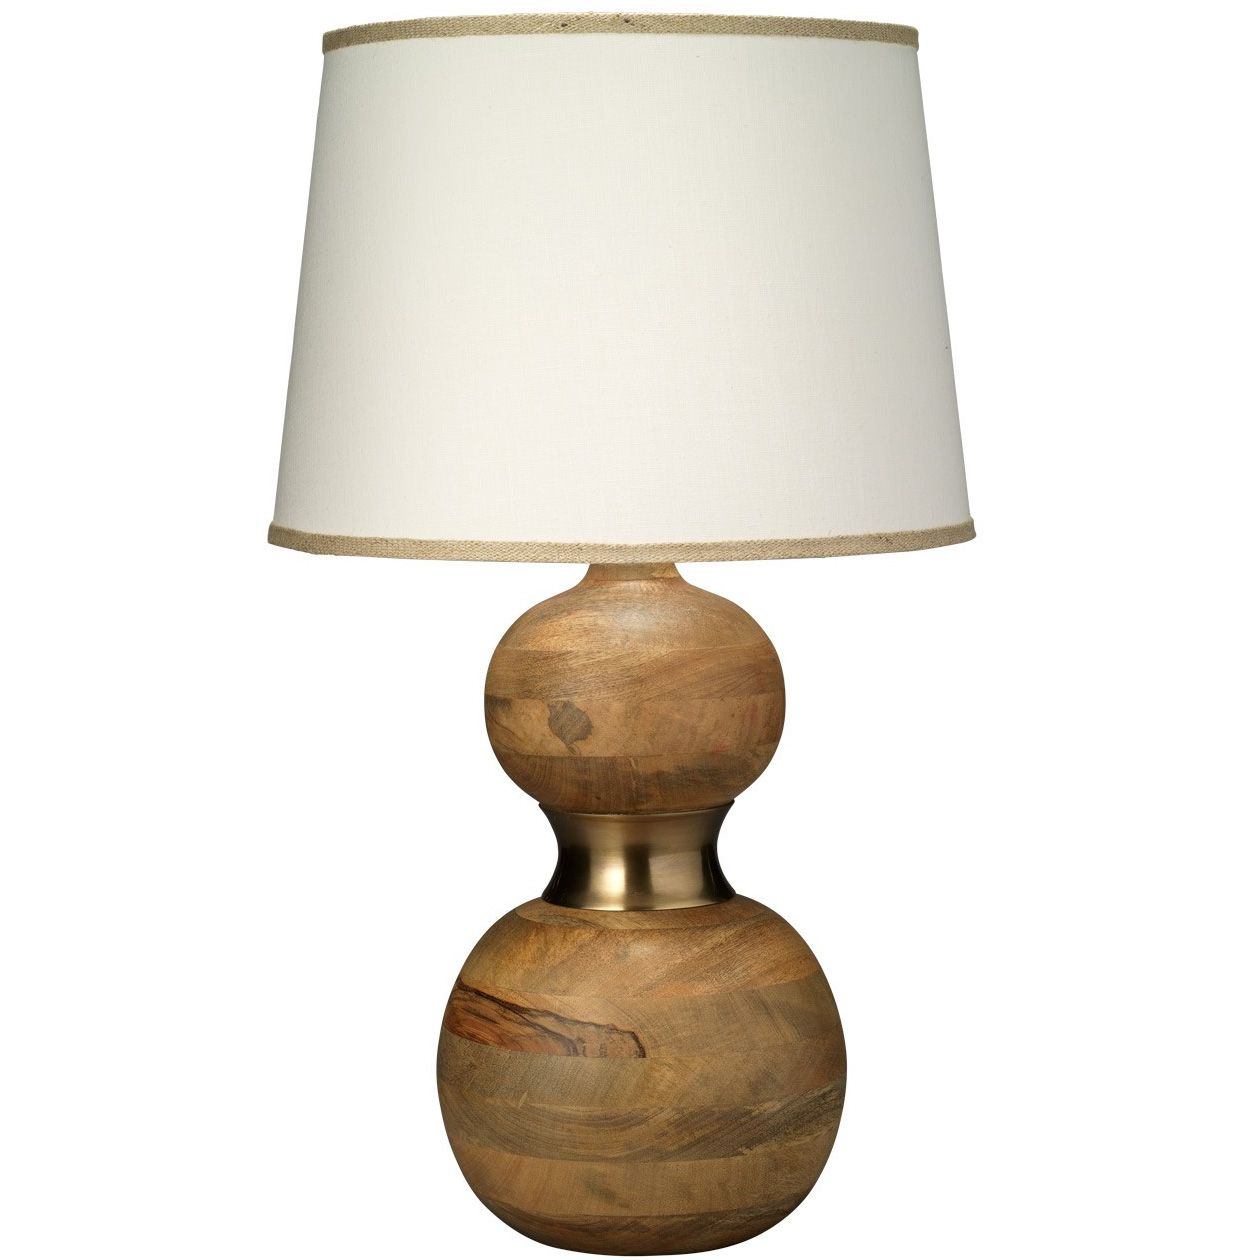 Bandeau Table Lamp By Jamie Young Company 1band Tlna 2cone T966lg Table Lamp Wood Natural Table Lamps Table Lamp